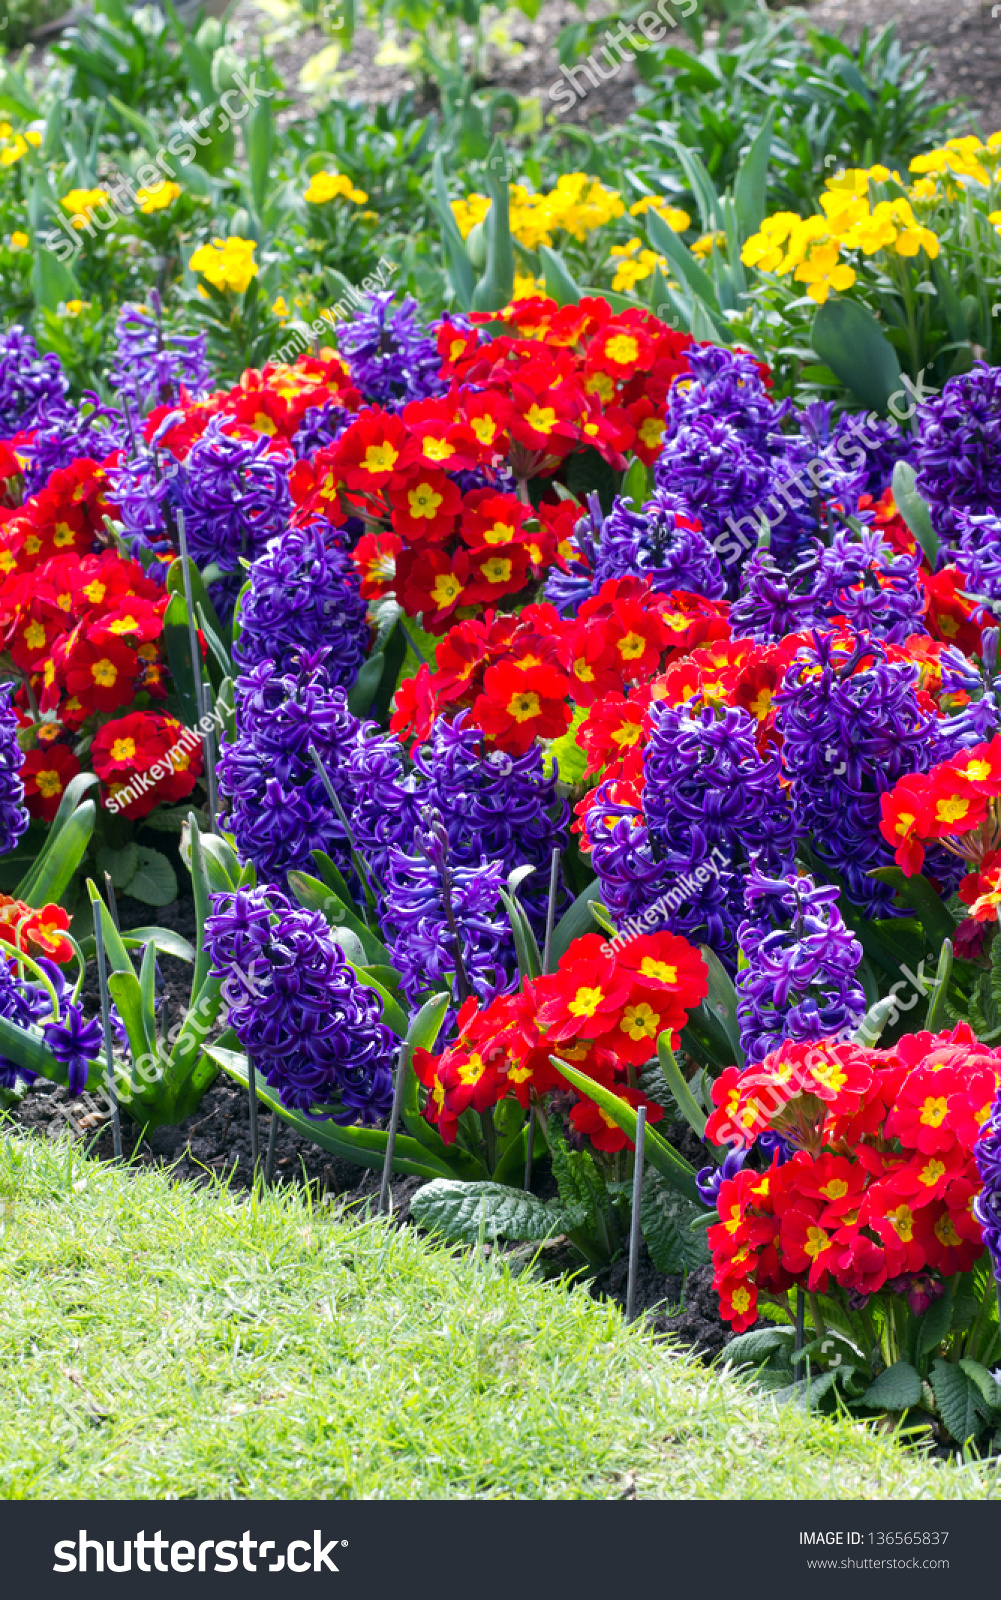 Variety Bright Spring Flowers Bloom English Stock Photo 100 Legal